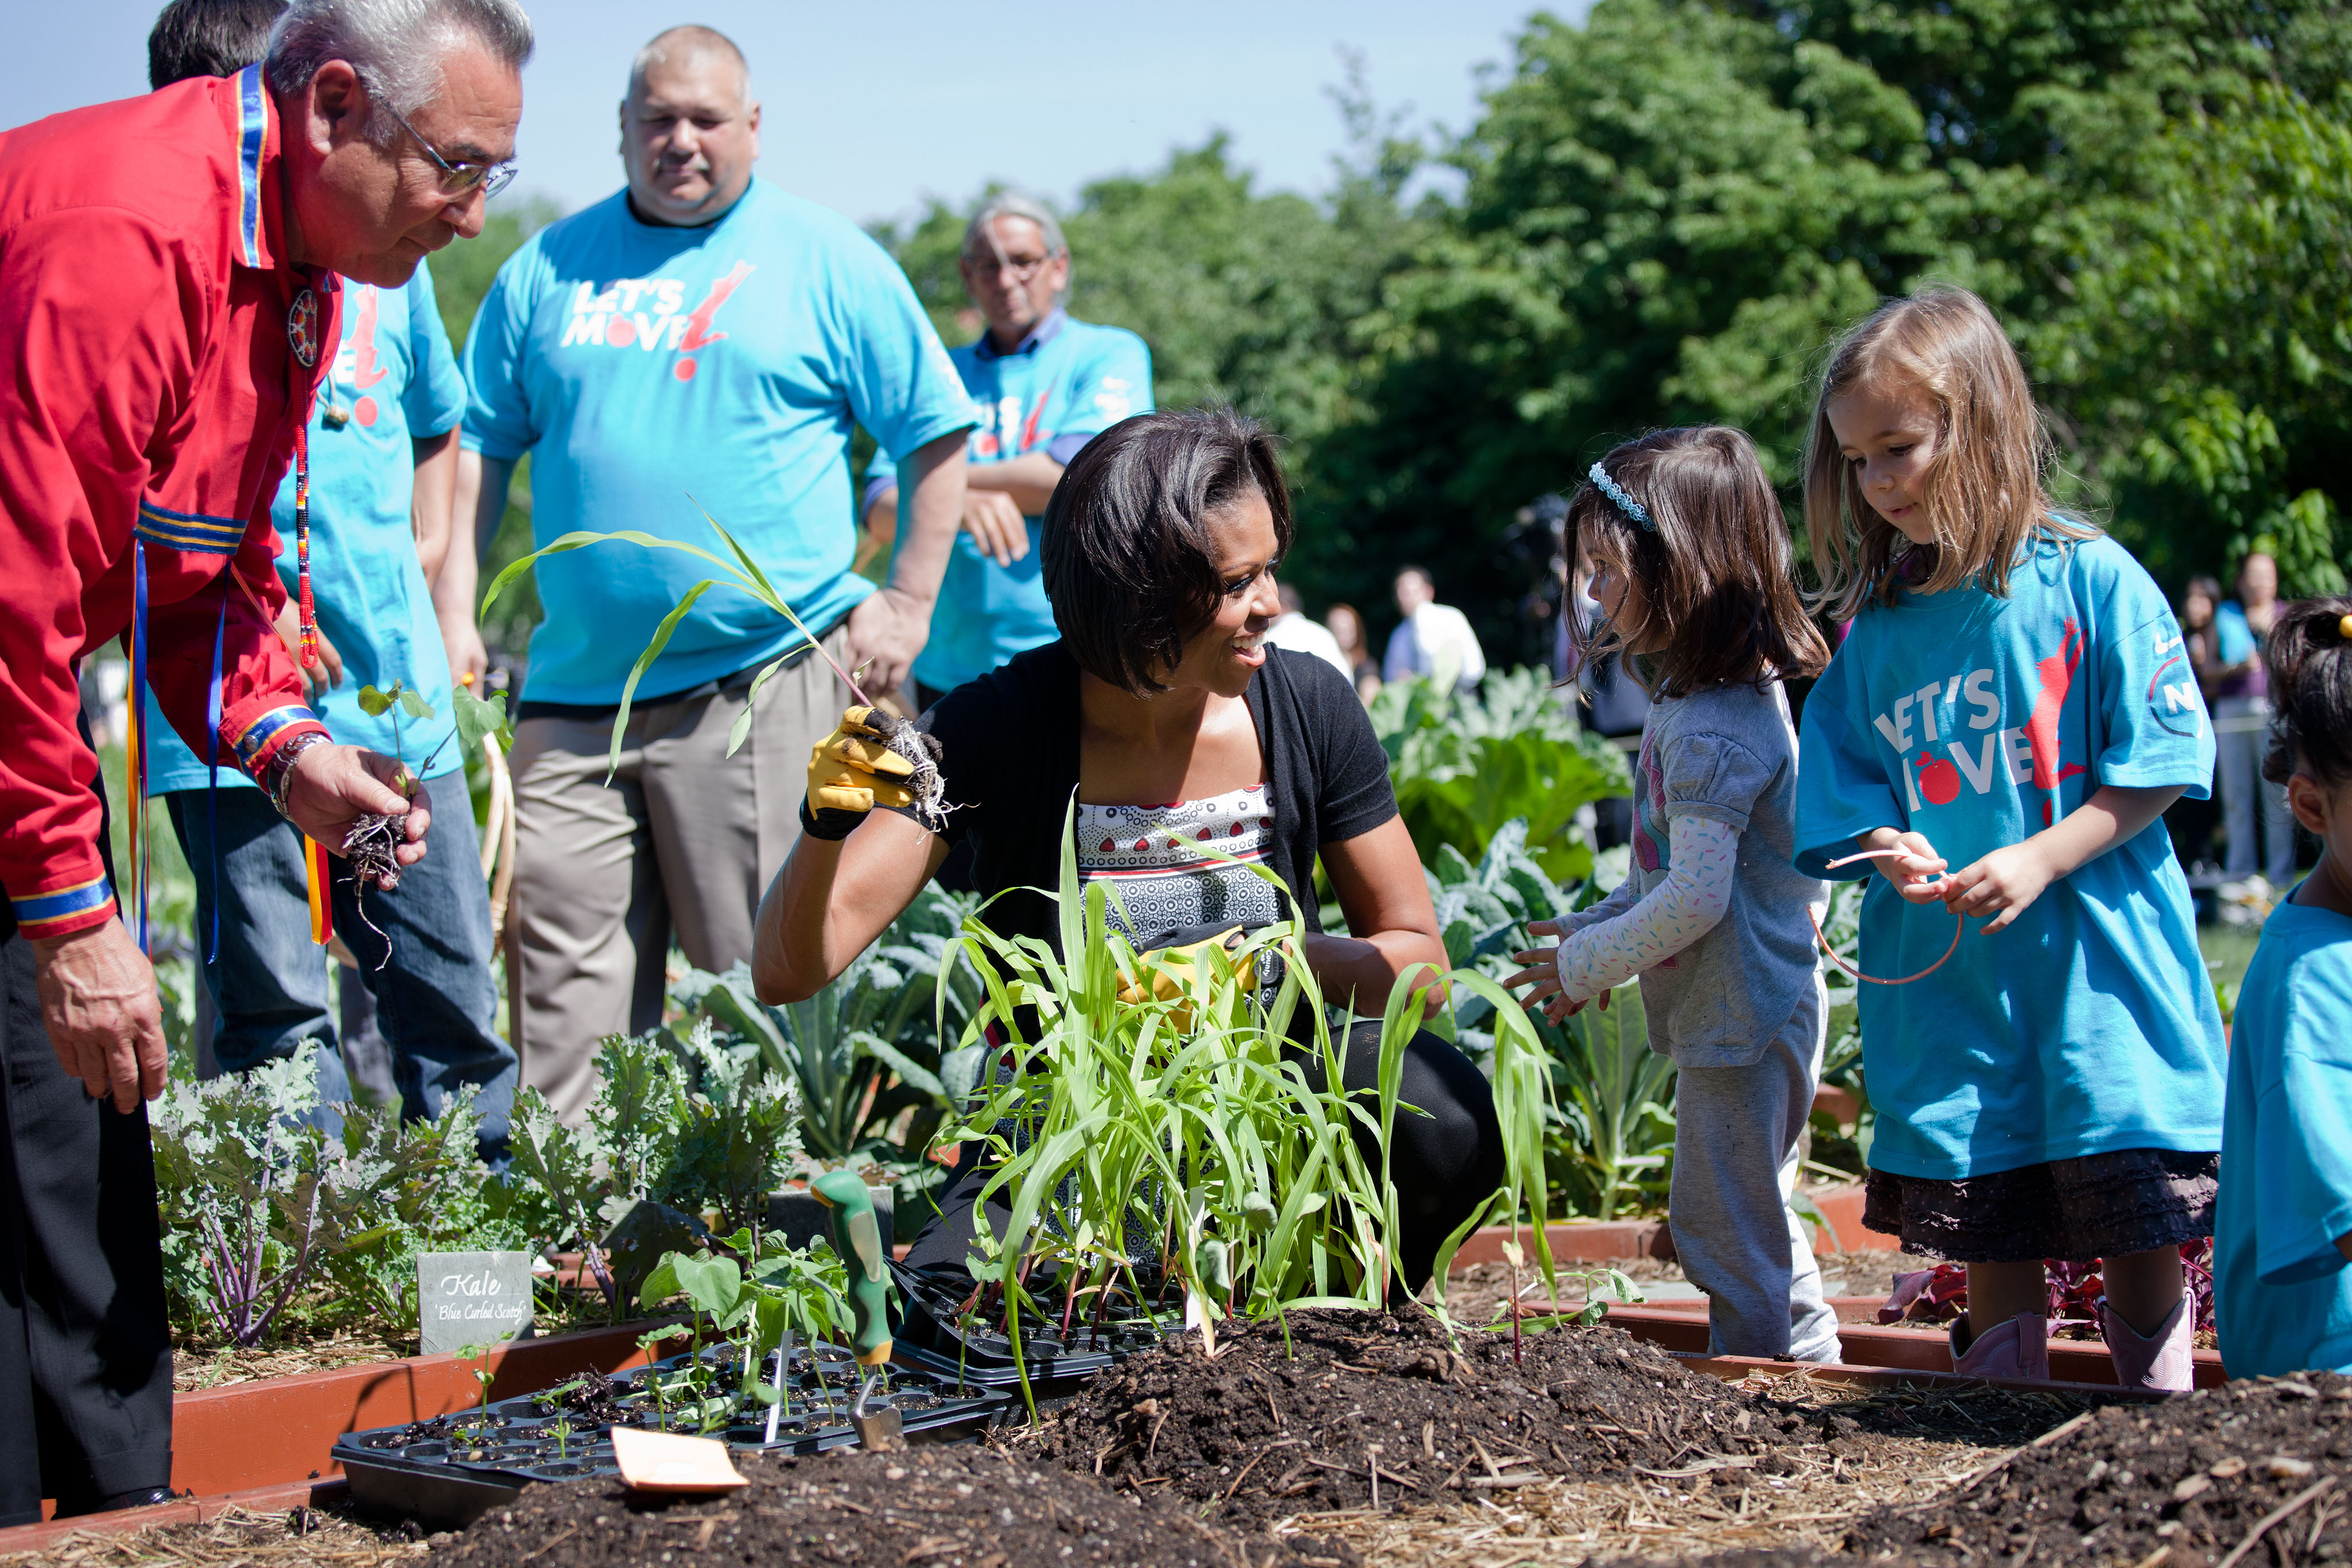 First Lady Plants Garden with Native American Children